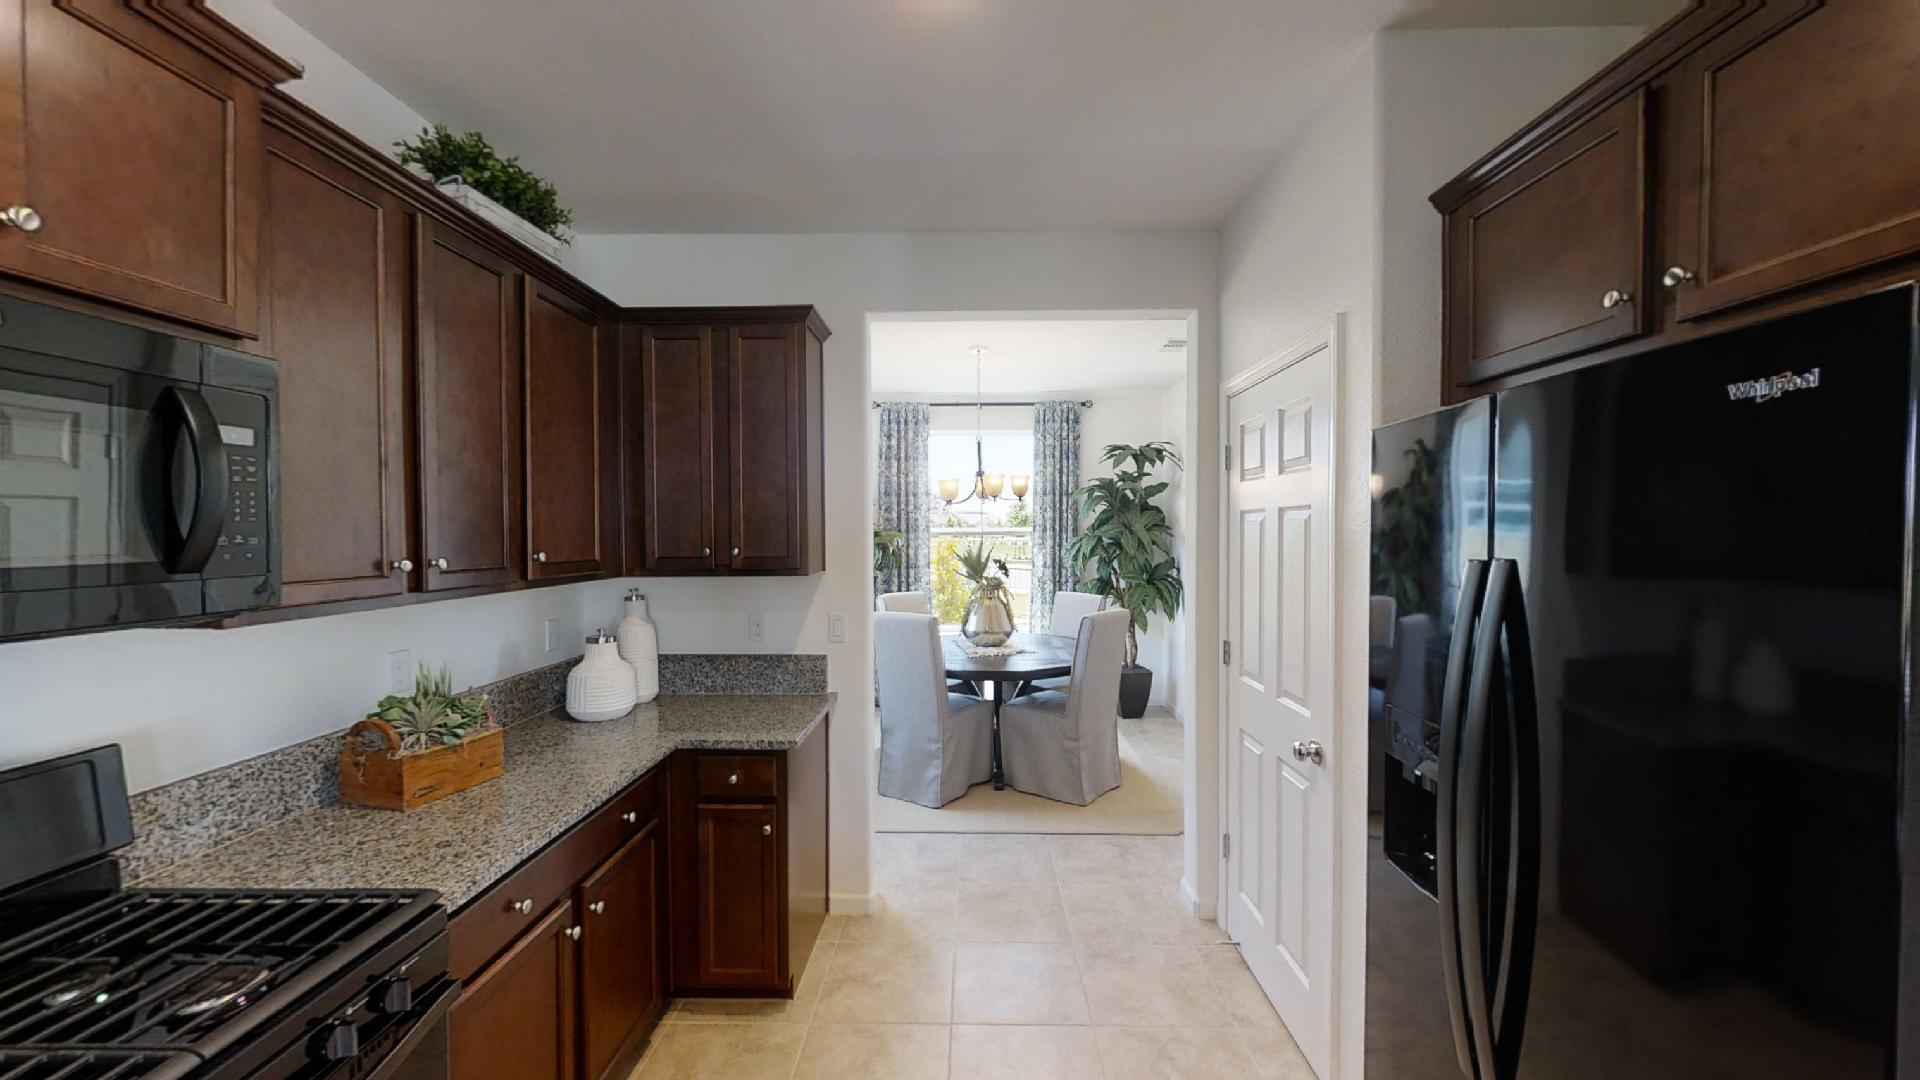 Kitchen featured in the Ballad By Century Communities in Fresno, CA